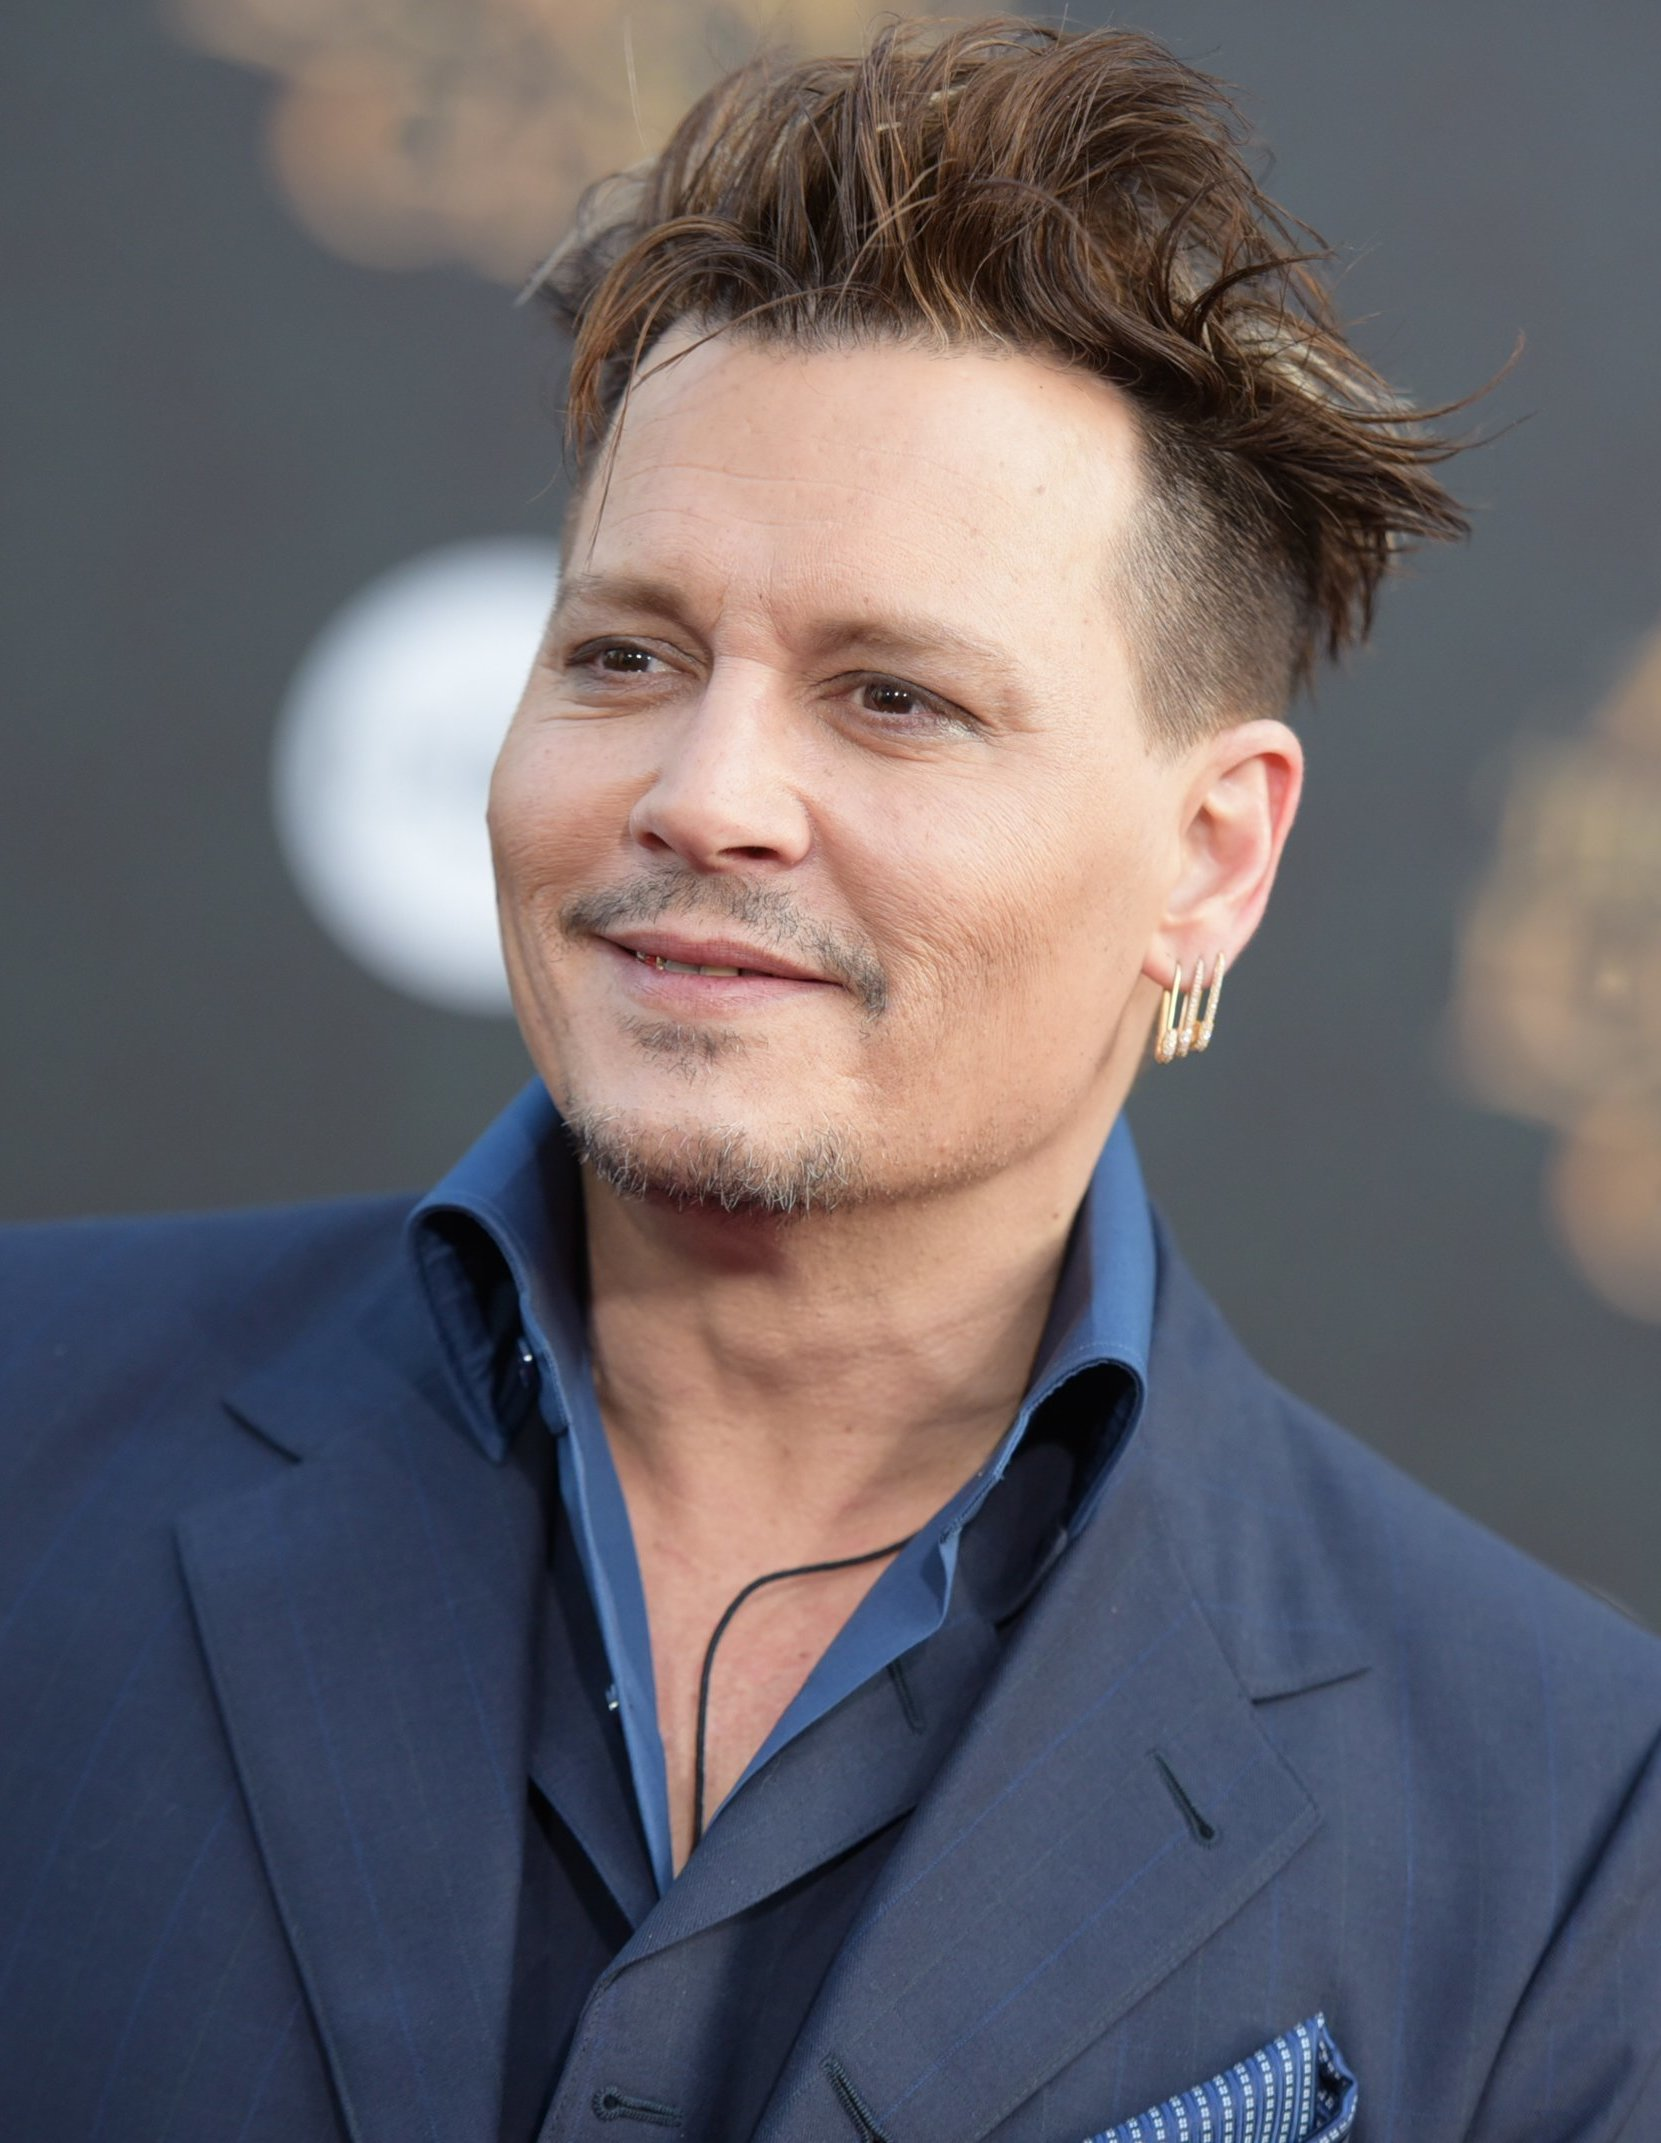 The 55-year old son of father John Christopher Depp and mother Betty Sue Palmer Johnny Depp in 2018 photo. Johnny Depp earned a 20 million dollar salary - leaving the net worth at 350 million in 2018